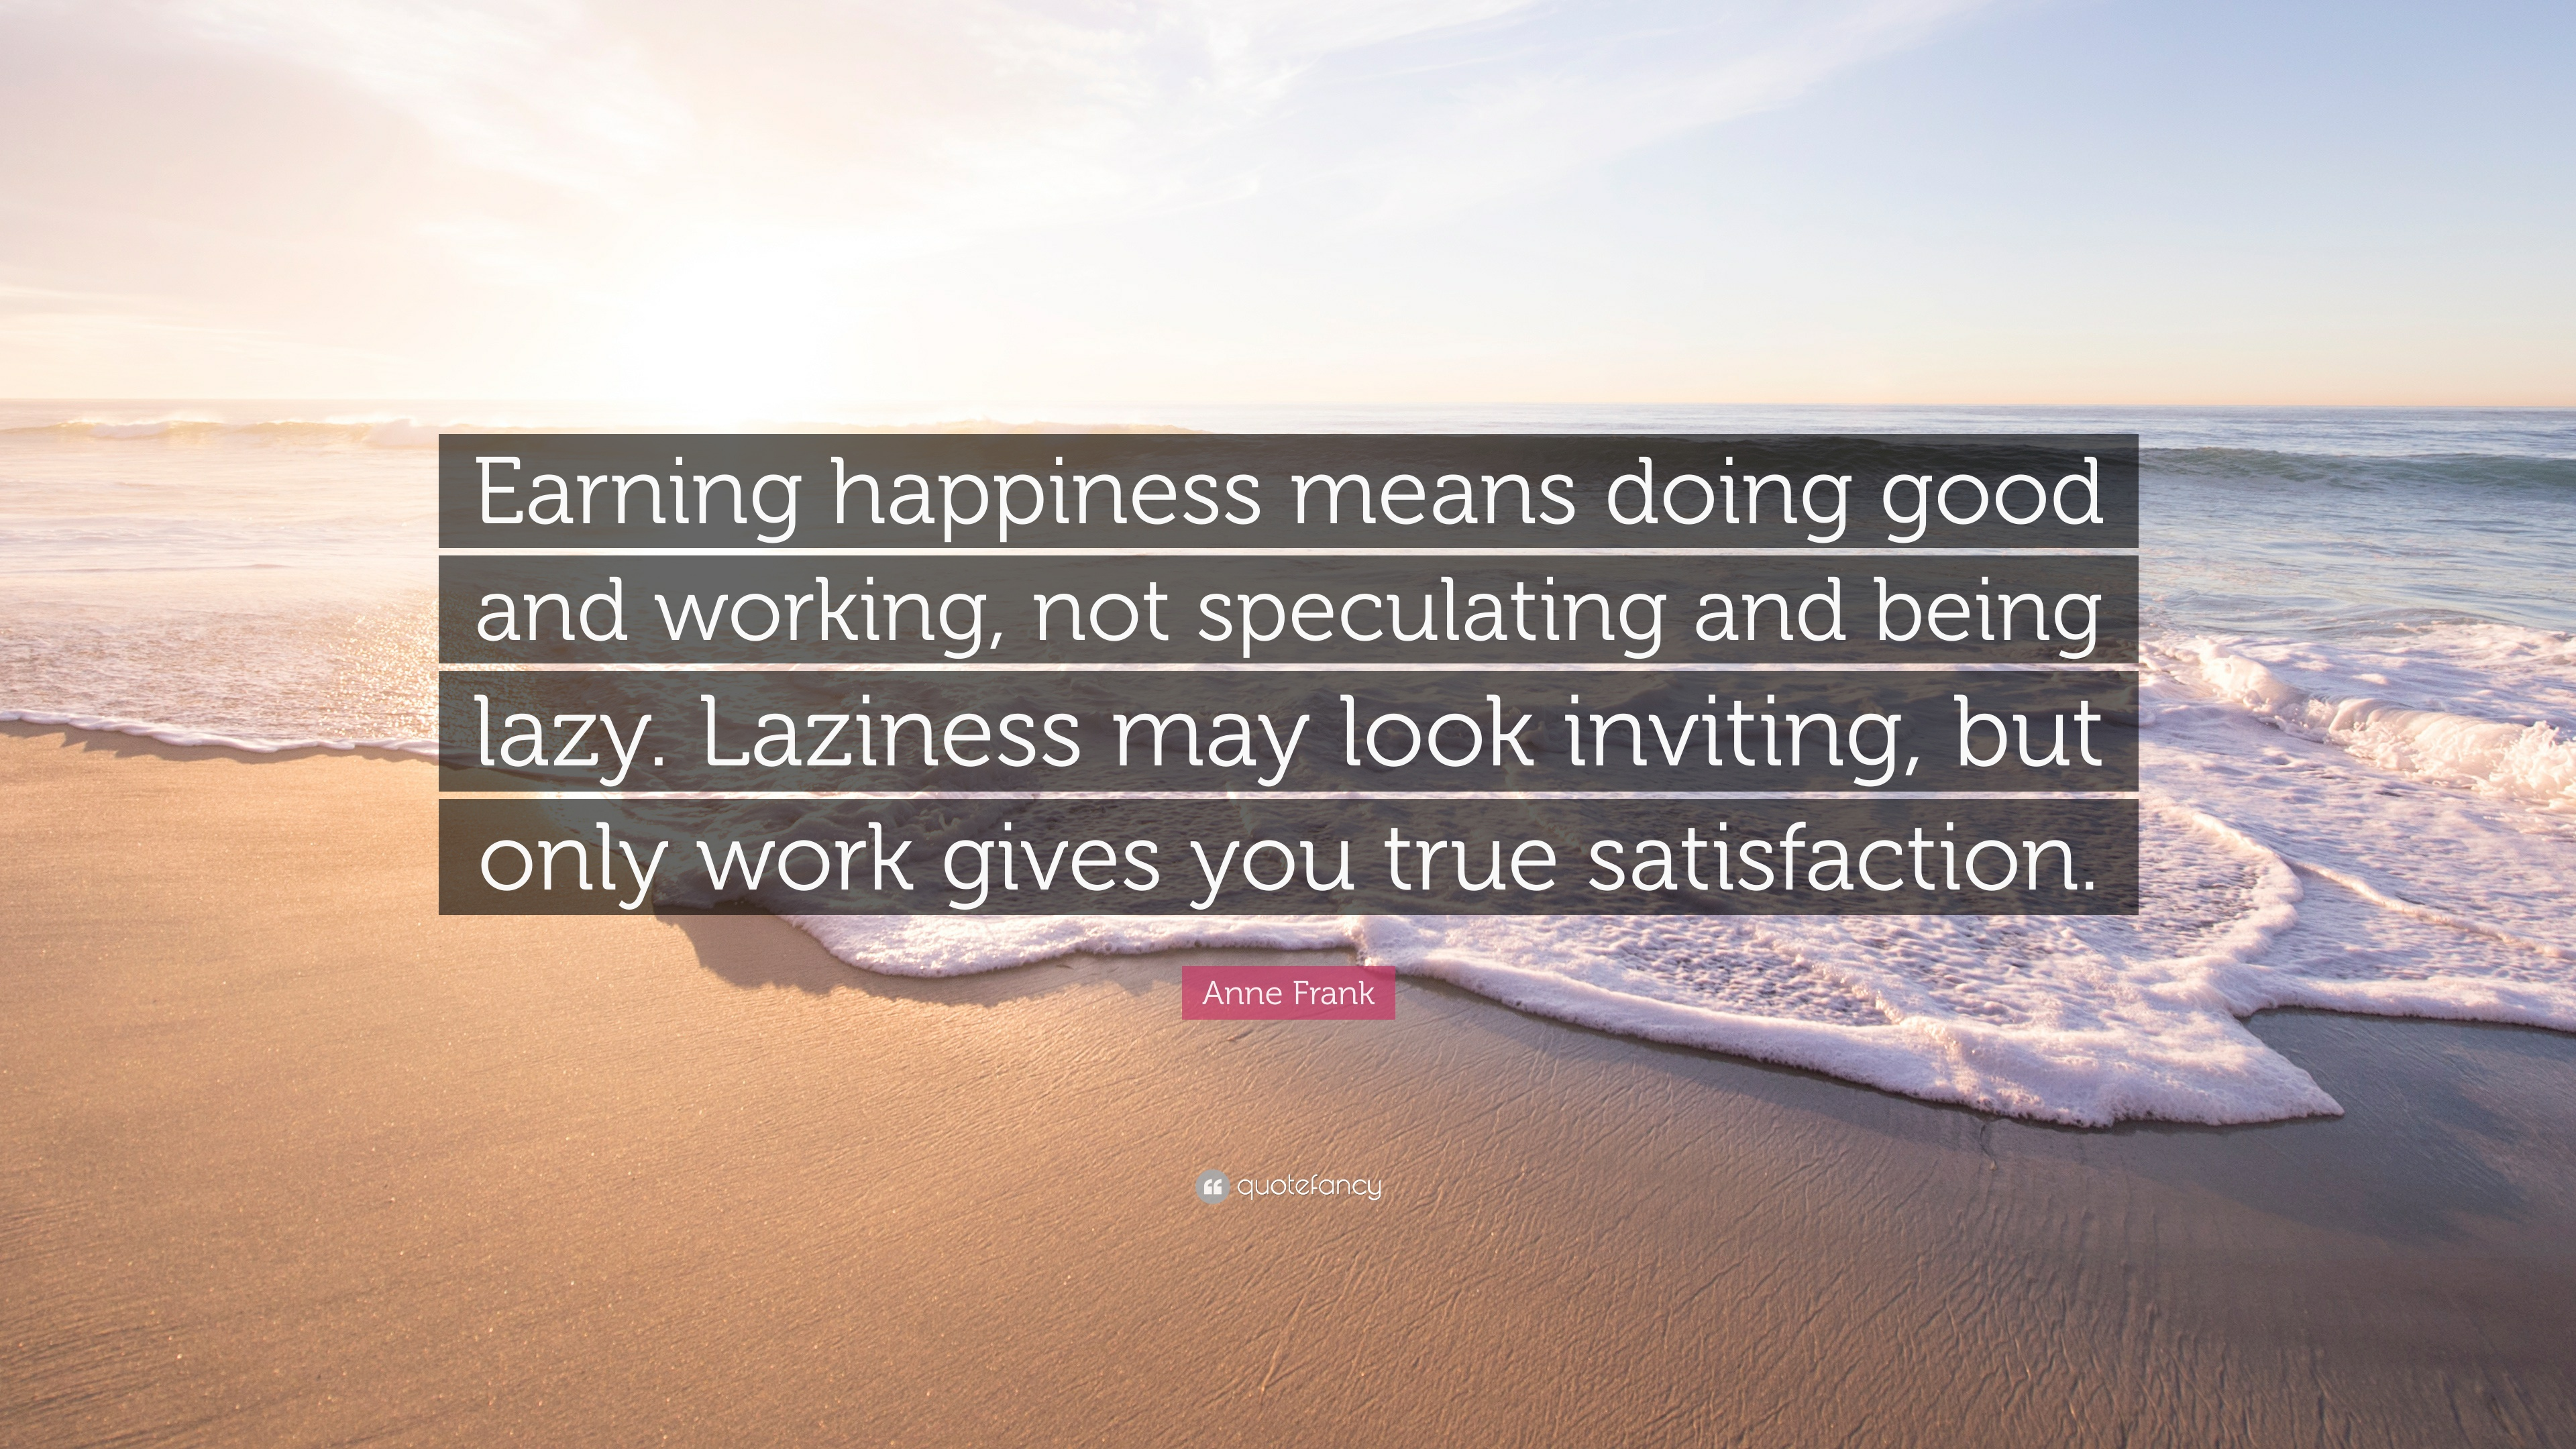 "Doing And Wor Not Inviting Quote Laziness Only May Anne Happiness Good Working Lazy Speculating - Quotefancy Look Wallpapers ""earning Means Frank But "" 12 Being"